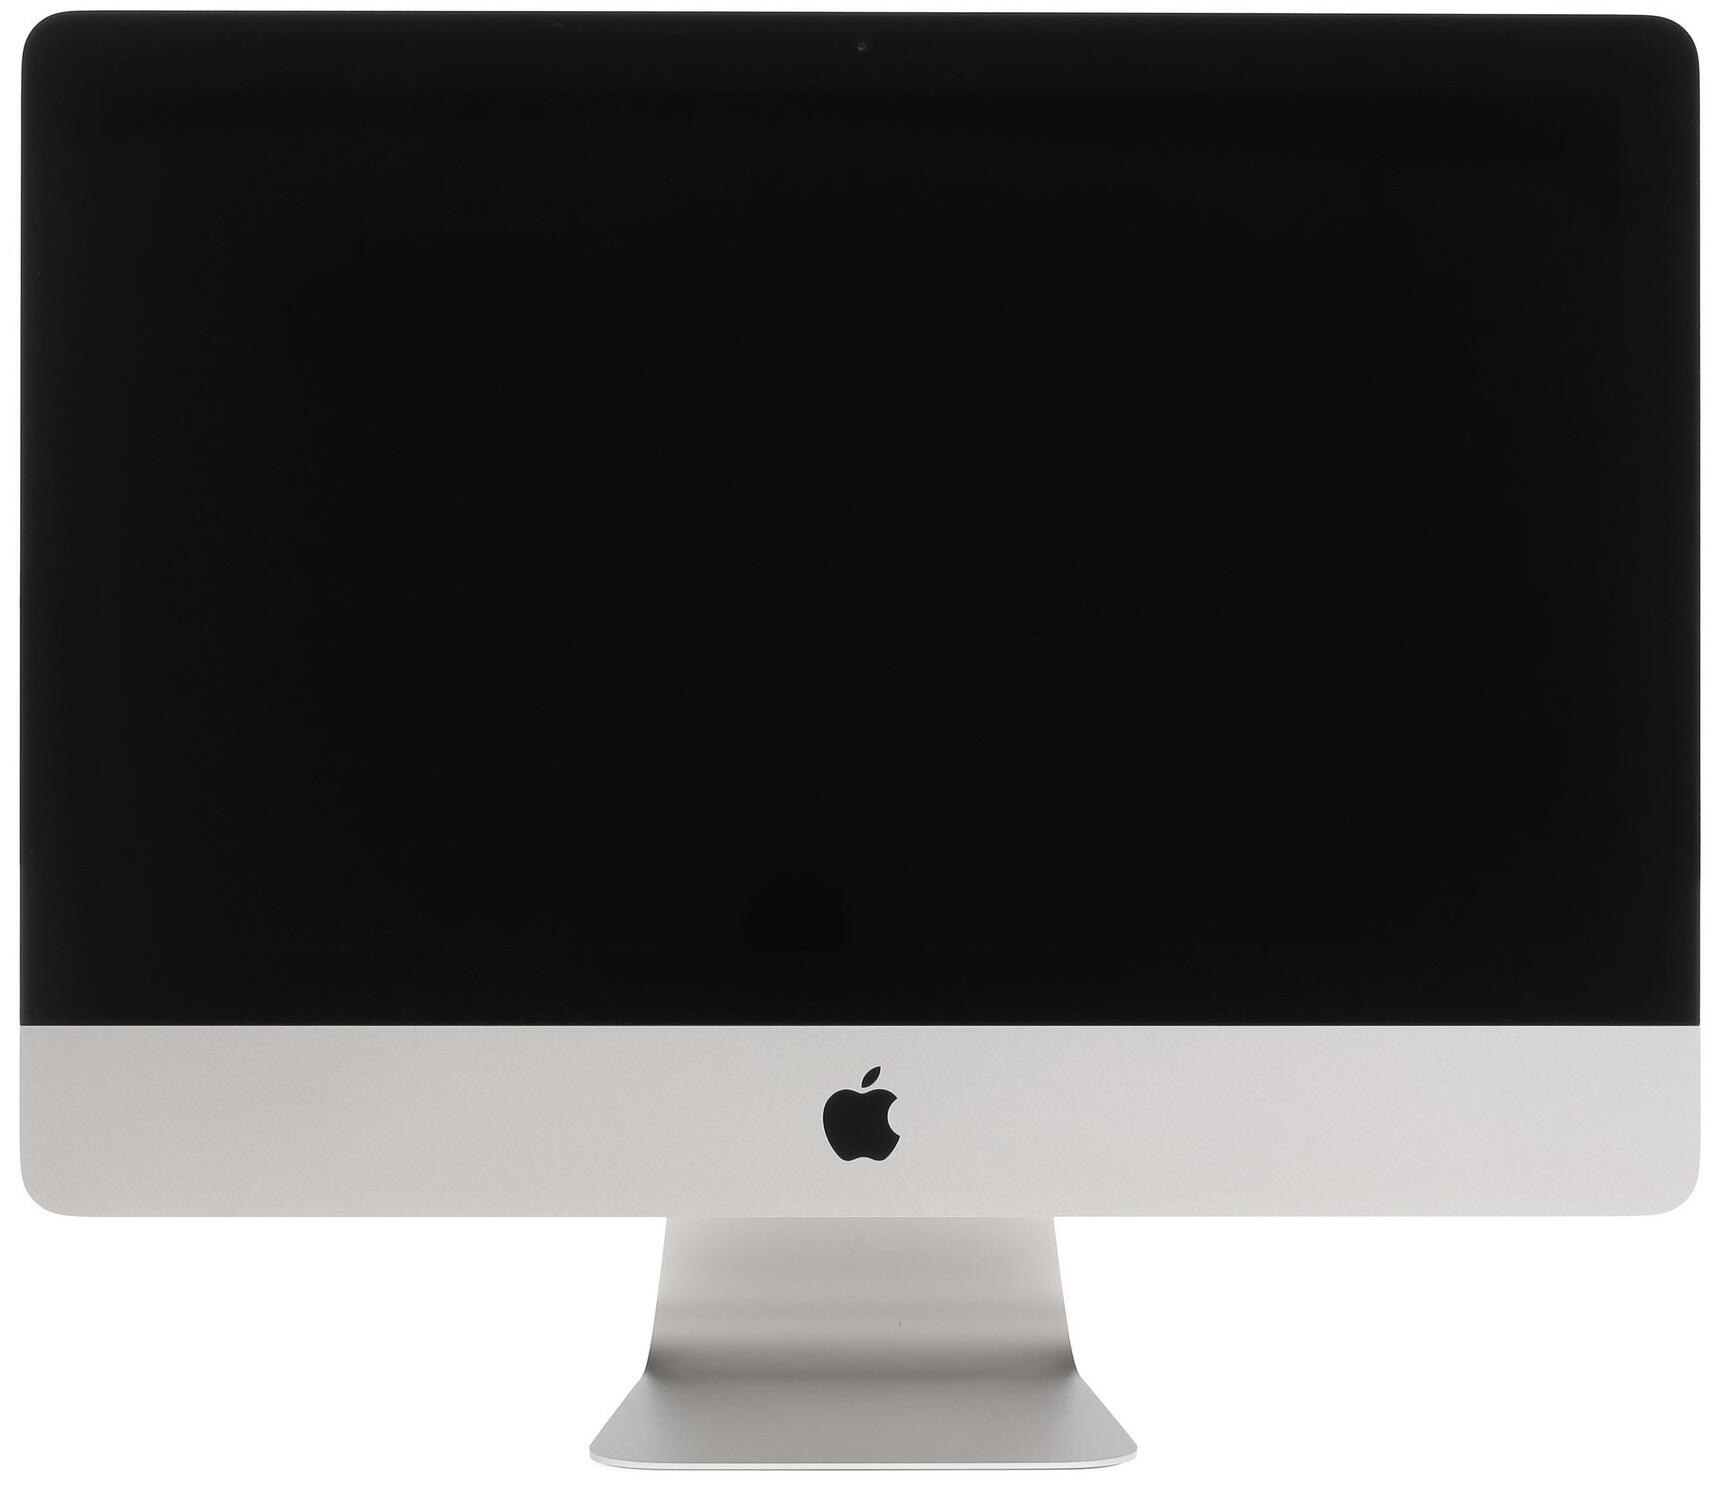 Моноблок APPLE iMac MNE92RU/A (Intel Core i5 3.4 GHz/8192Mb/1000Gb/Radeon Pro 570 4096Mb/Wi-Fi/Bluetooth/Cam/27.0/5120x2880/macOS Sierra)